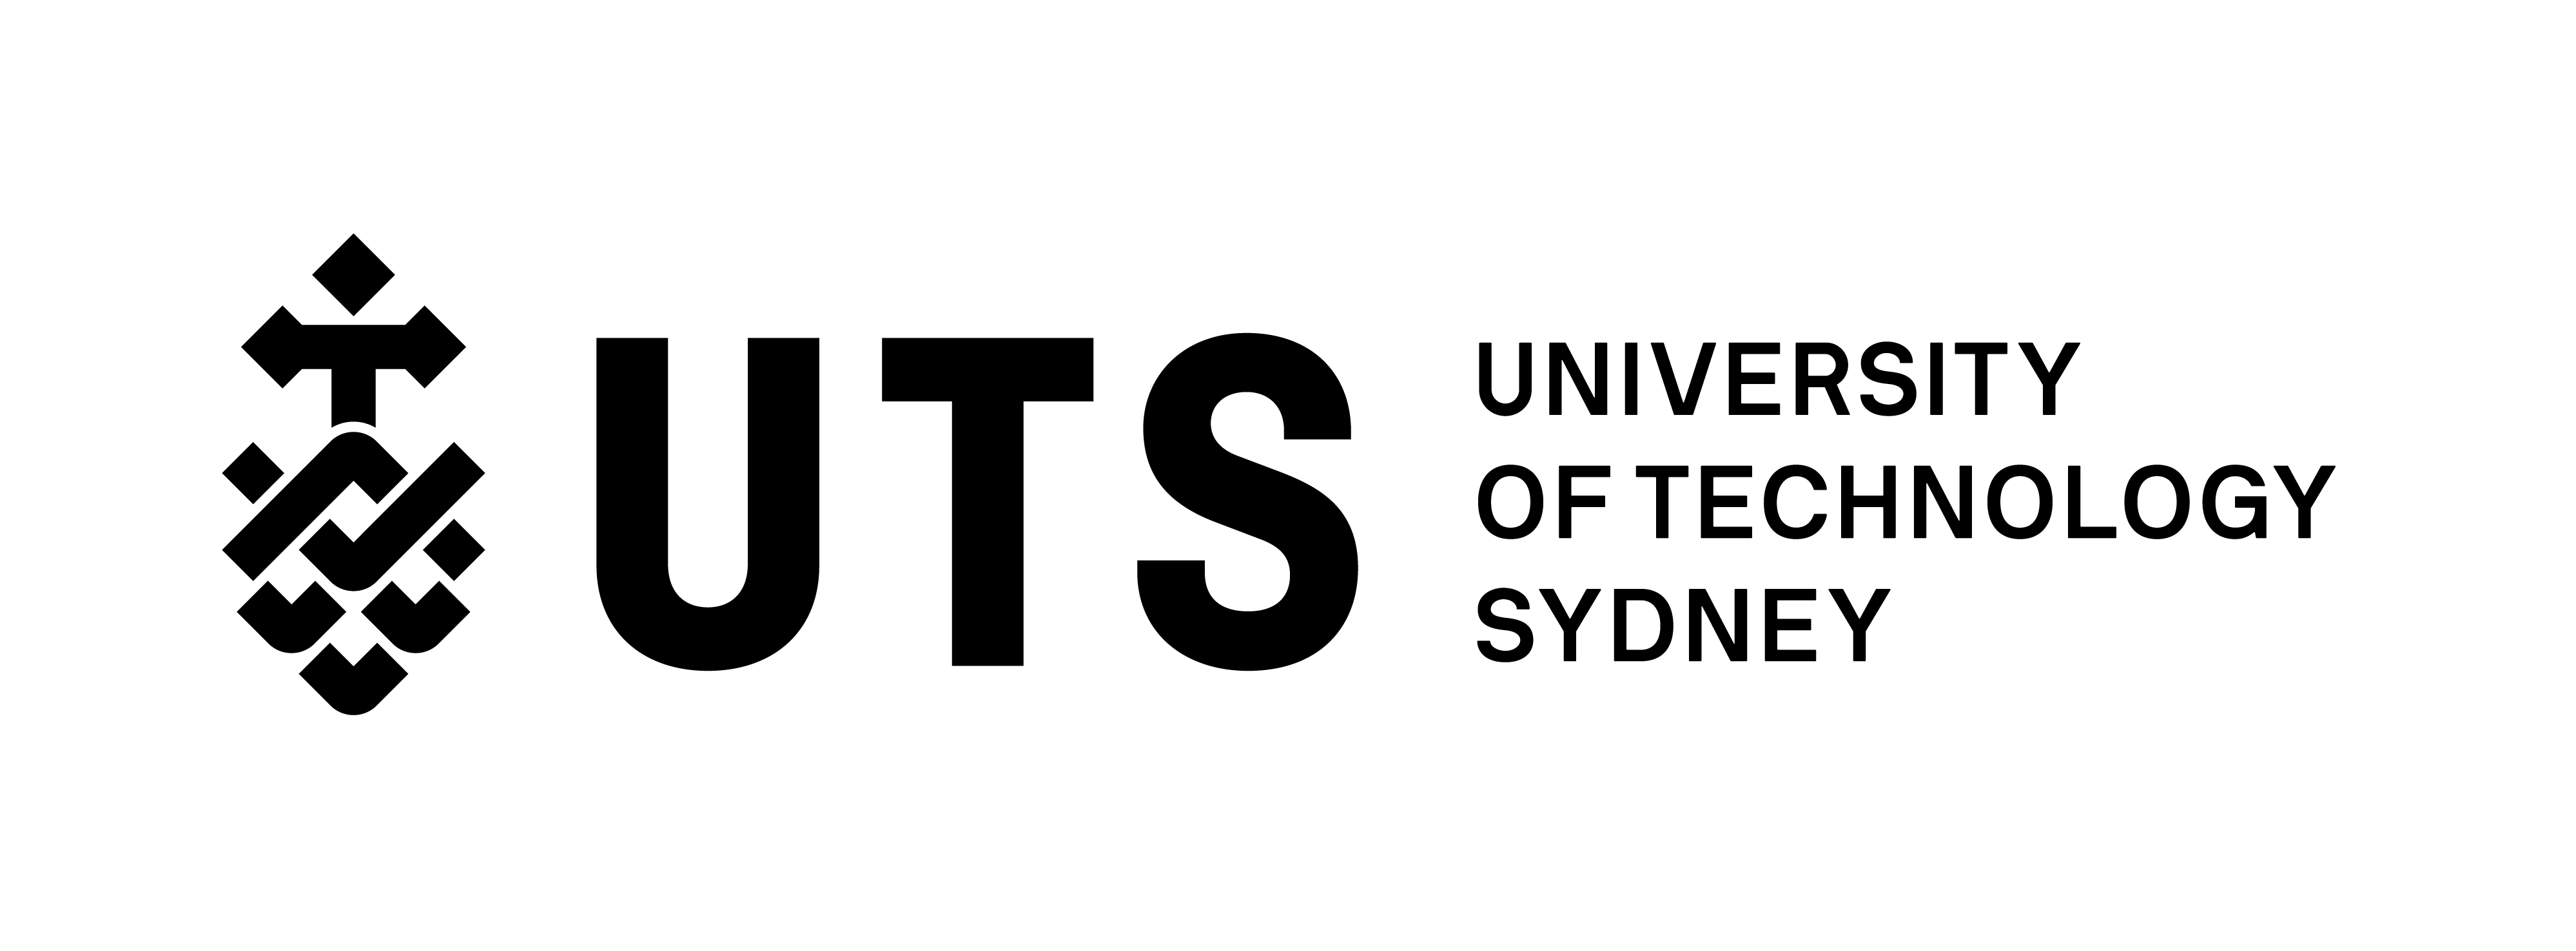 University of Technology Sydney - Bachelor of Sport and Exercise Science / Bachelor of Creative Intelligence and Innovation